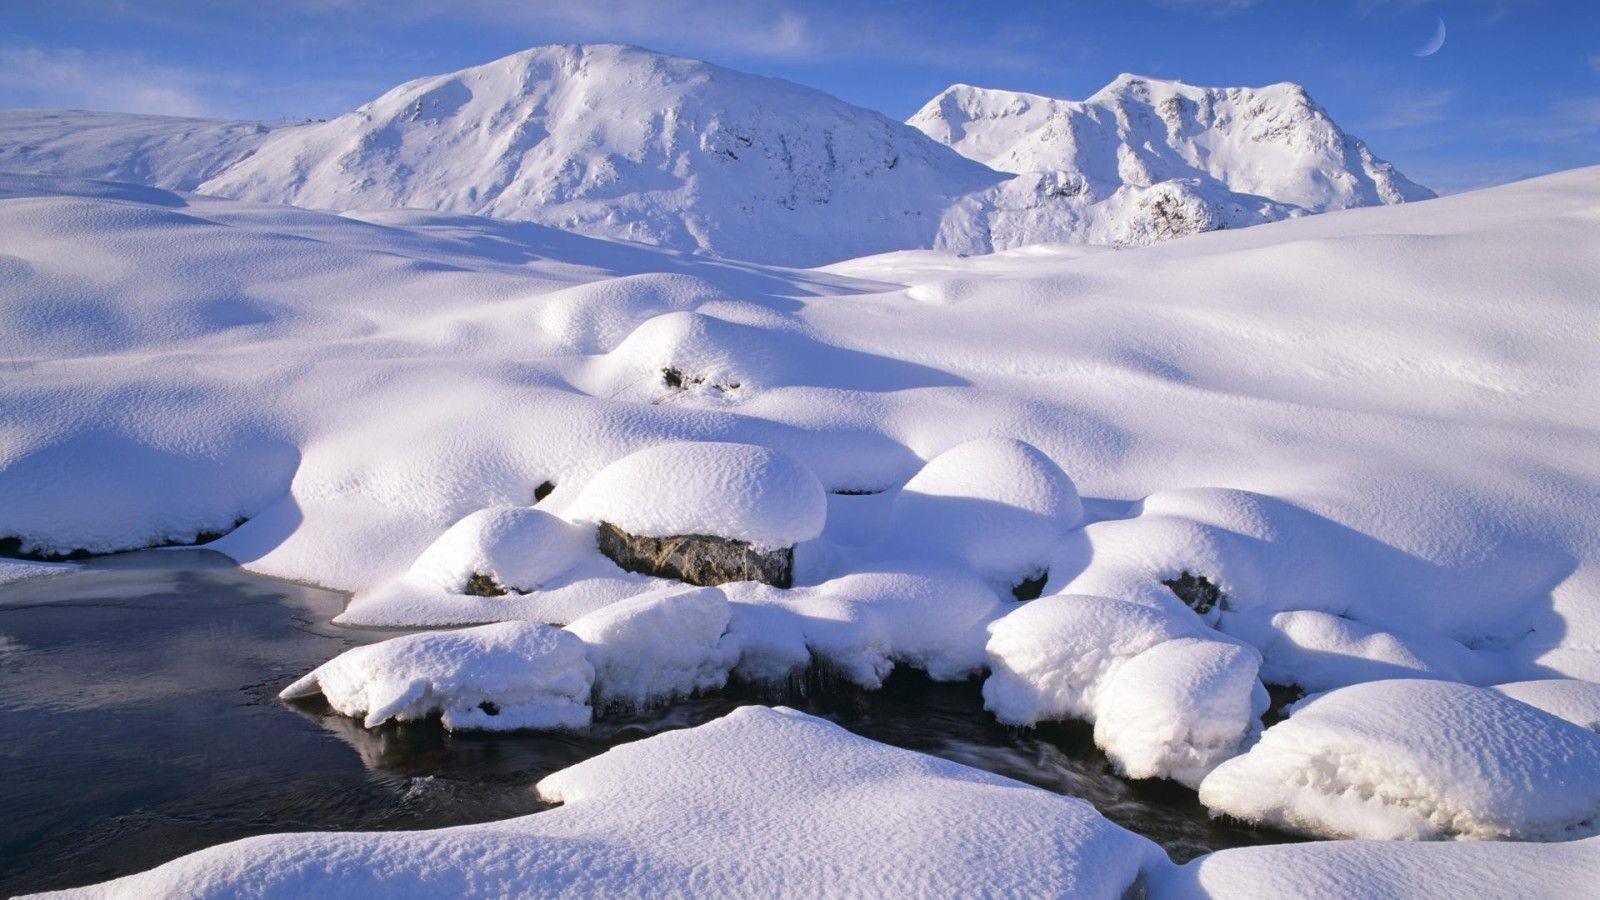 Wallpapers For > Beautiful Snow Scenery Wallpapers